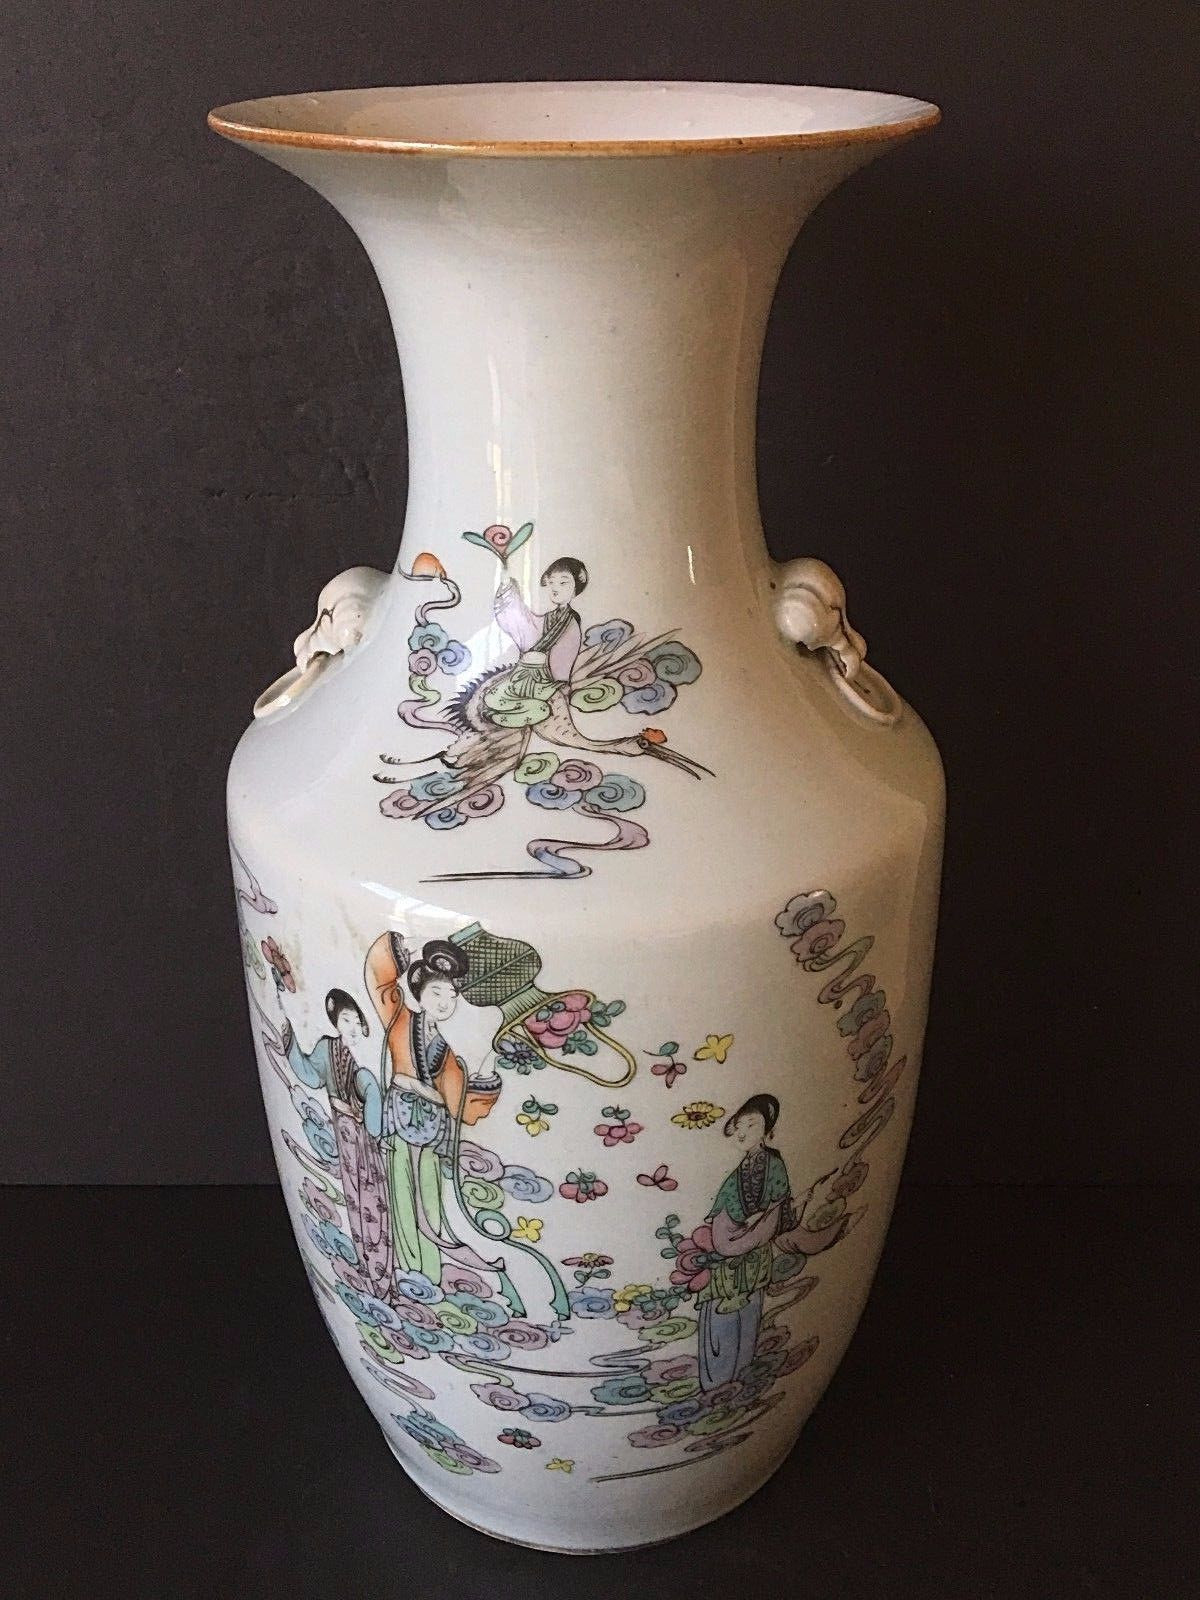 satsuma china vase of large urn vase images antiques gifts wonderful large antique in large urn vase photos antiques gifts chinese antique 19th century large porcelain famille of large urn